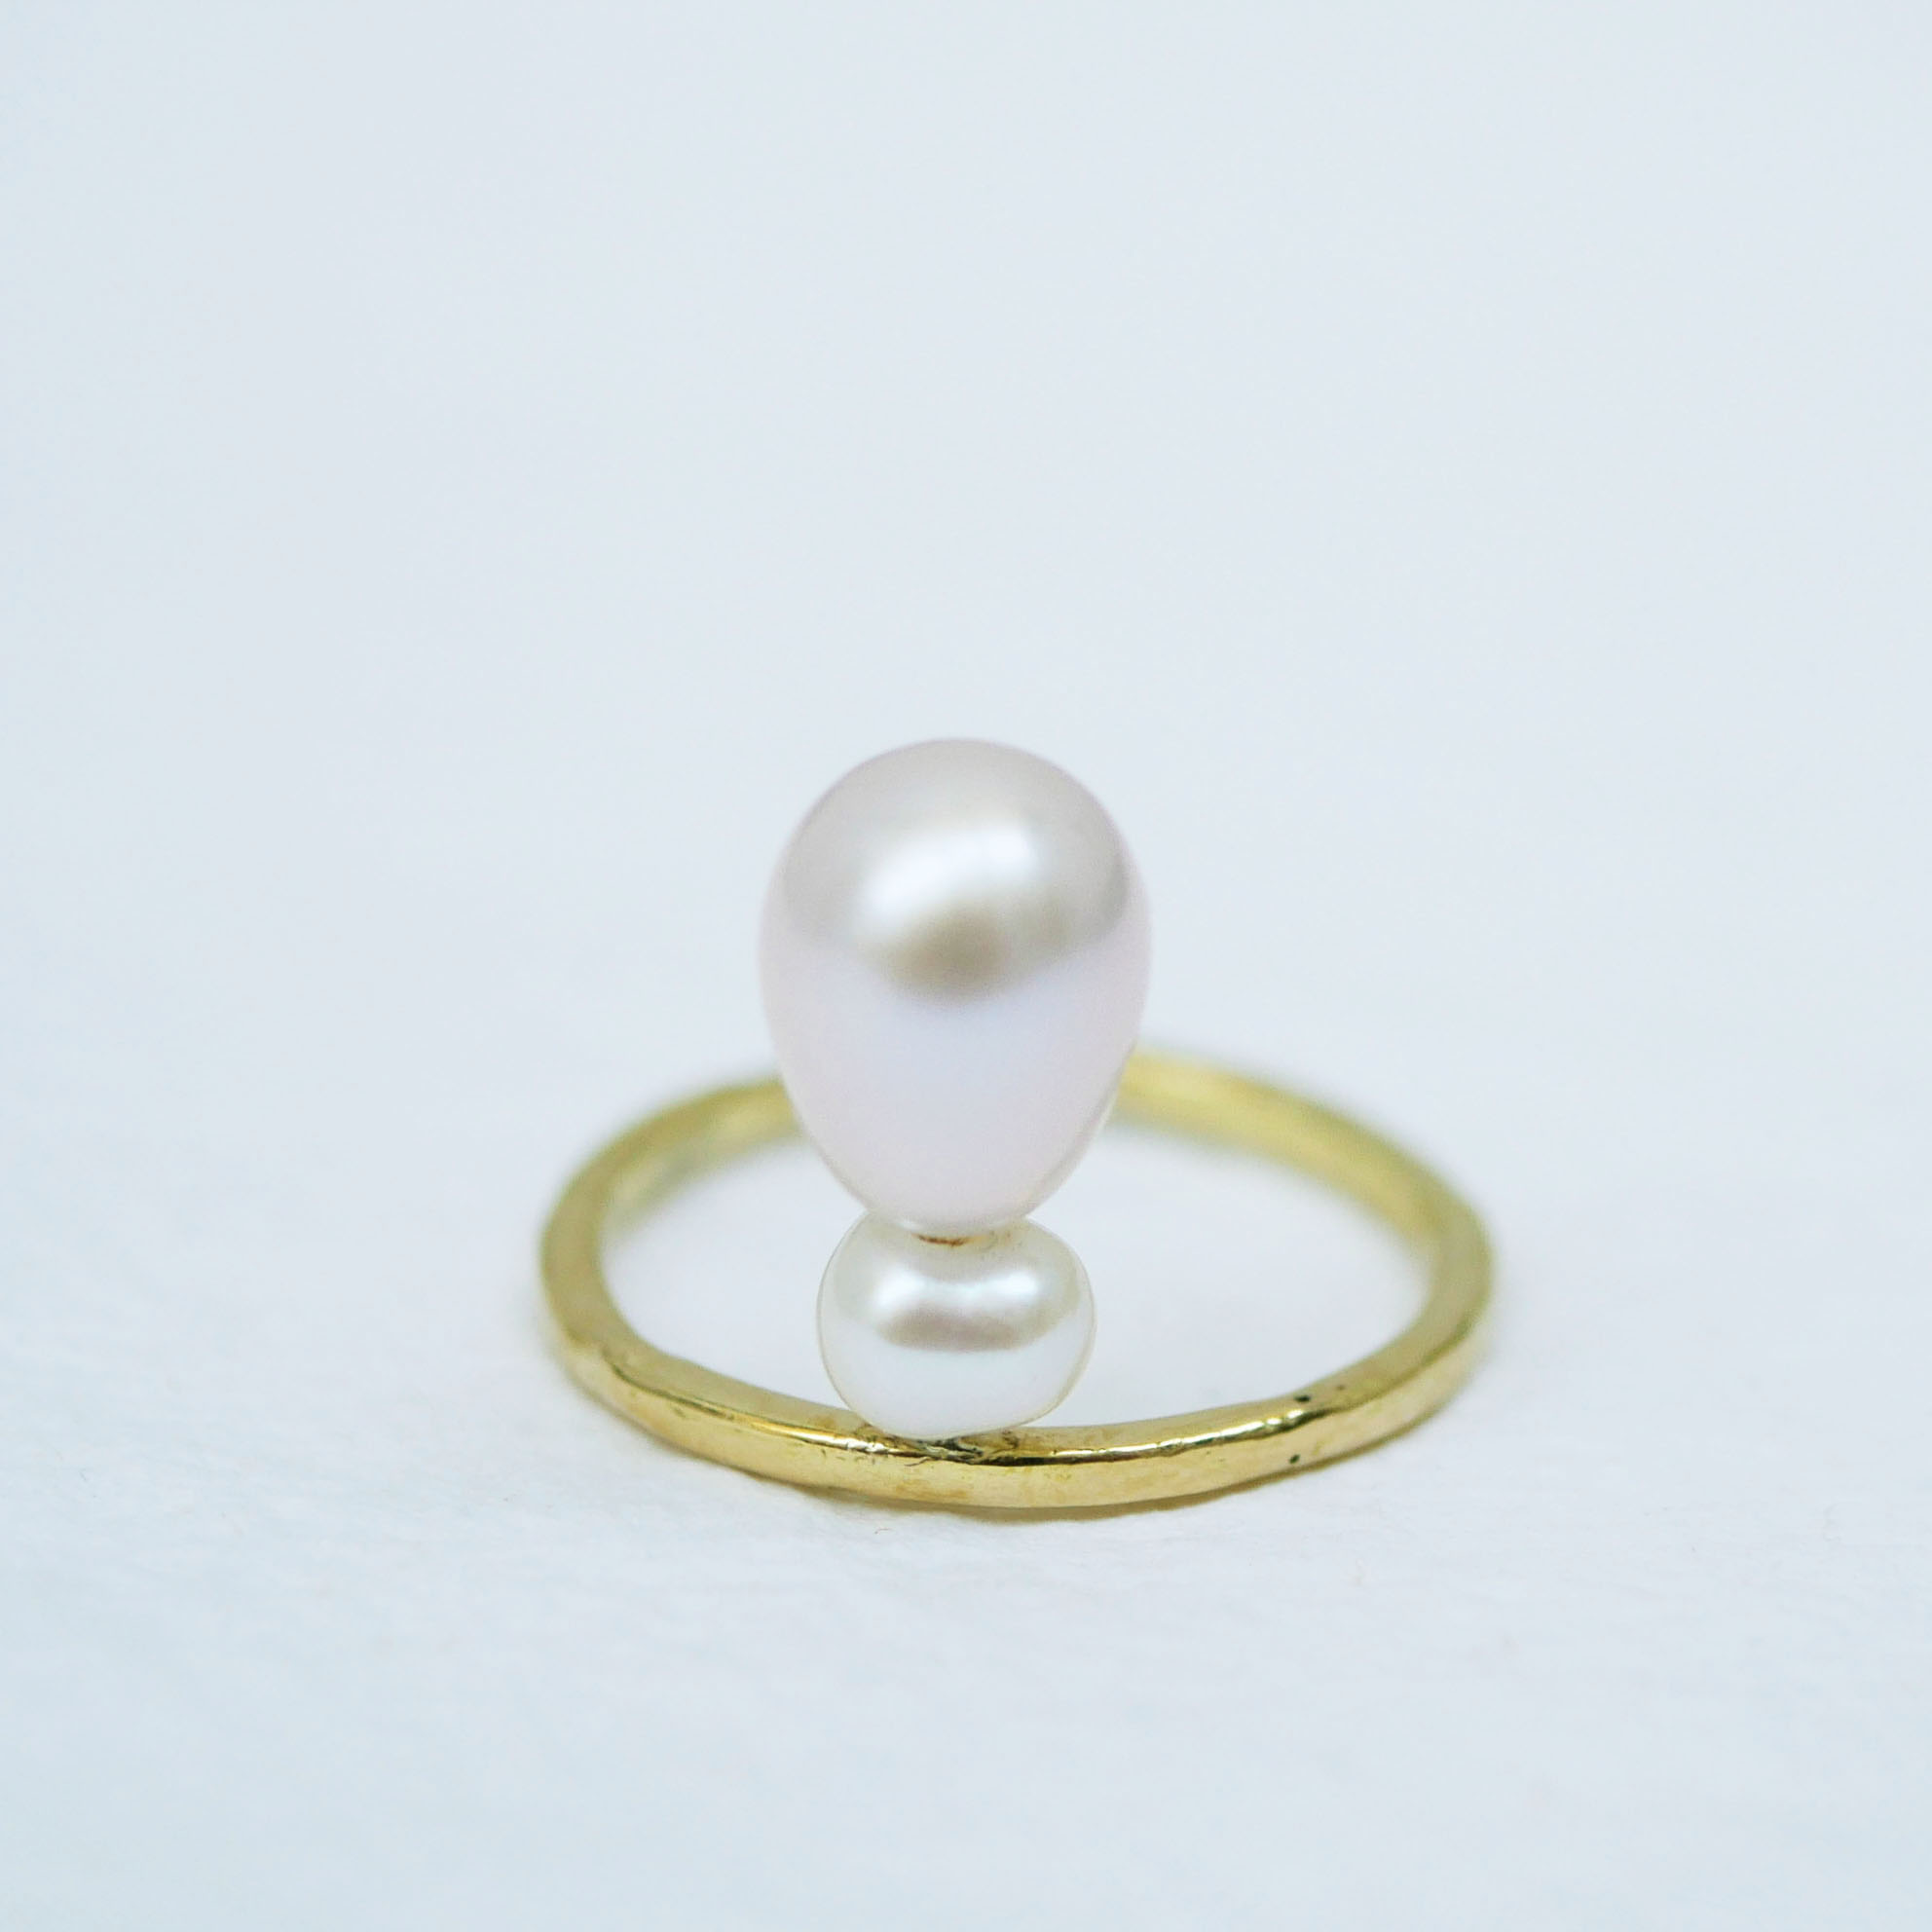 18ct yellow gold ring with pearl